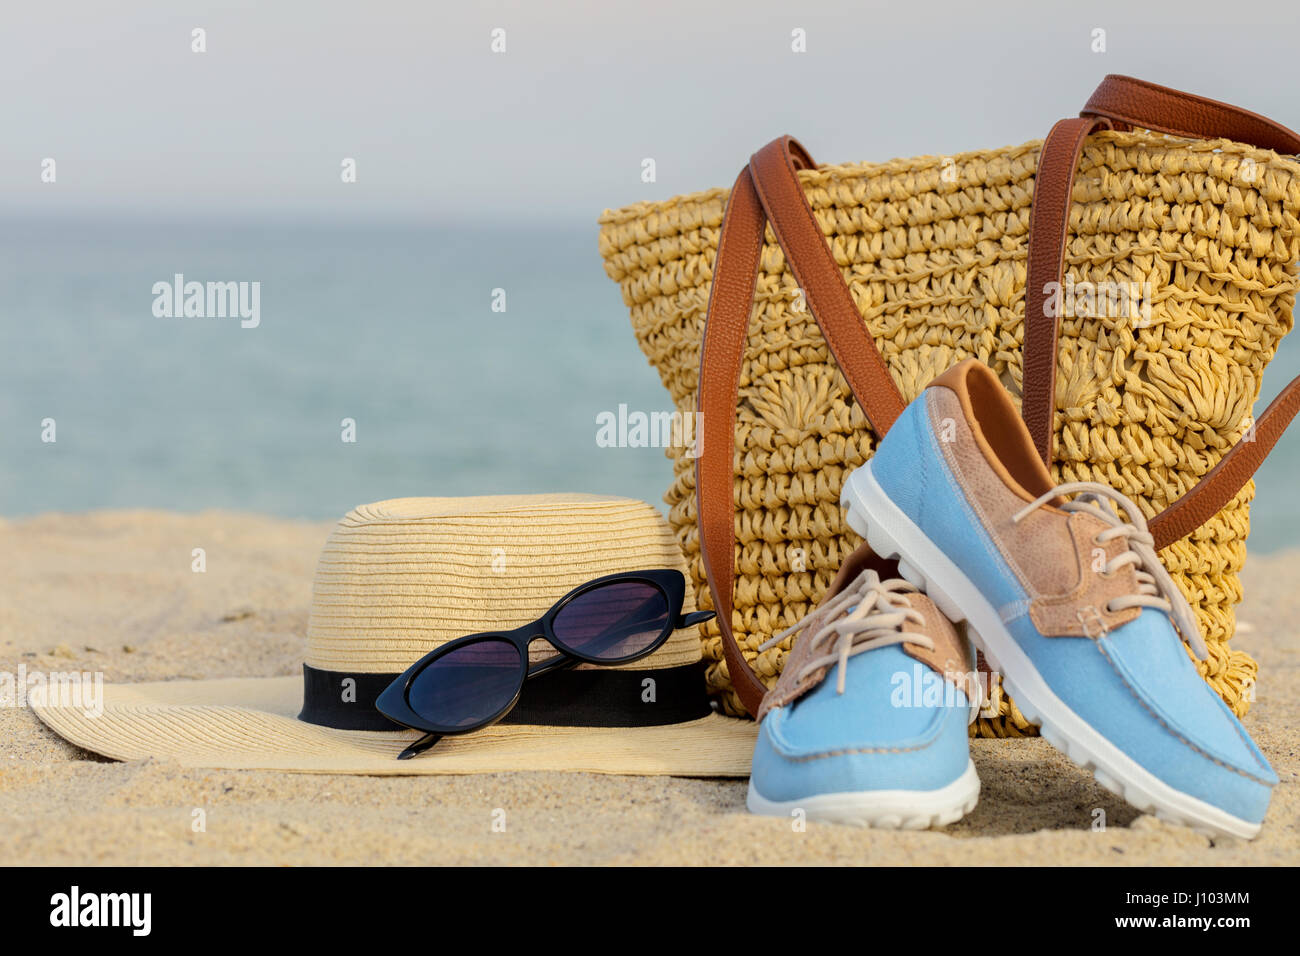 655f997dc0d6 Relax Shoes Jeans Sand Stock Photos   Relax Shoes Jeans Sand Stock ...